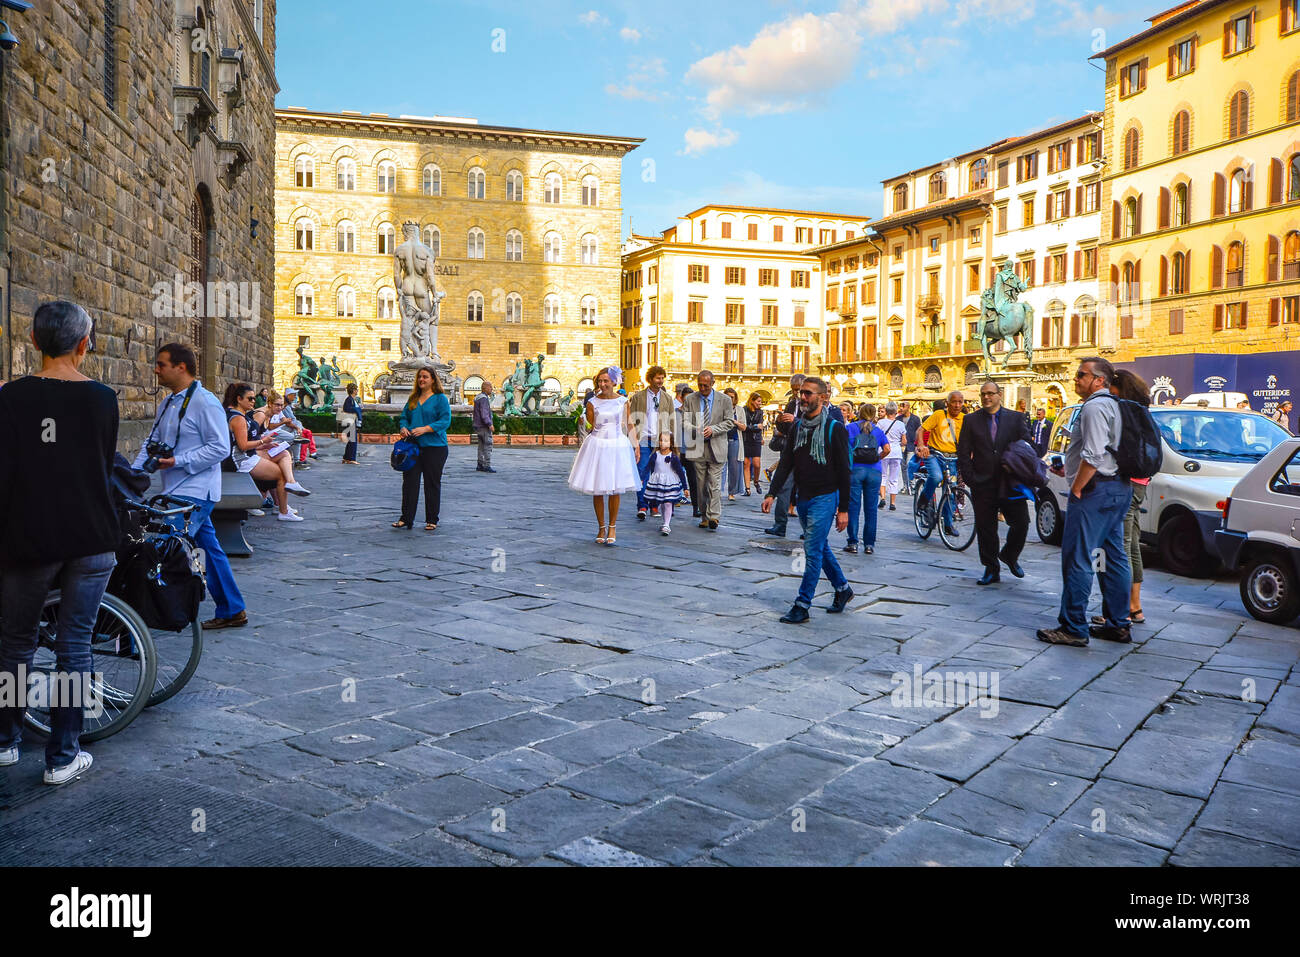 A bride and guests enter the Palazzo Vecchio in Florence Italy on the way to a wedding ceremony Stock Photo